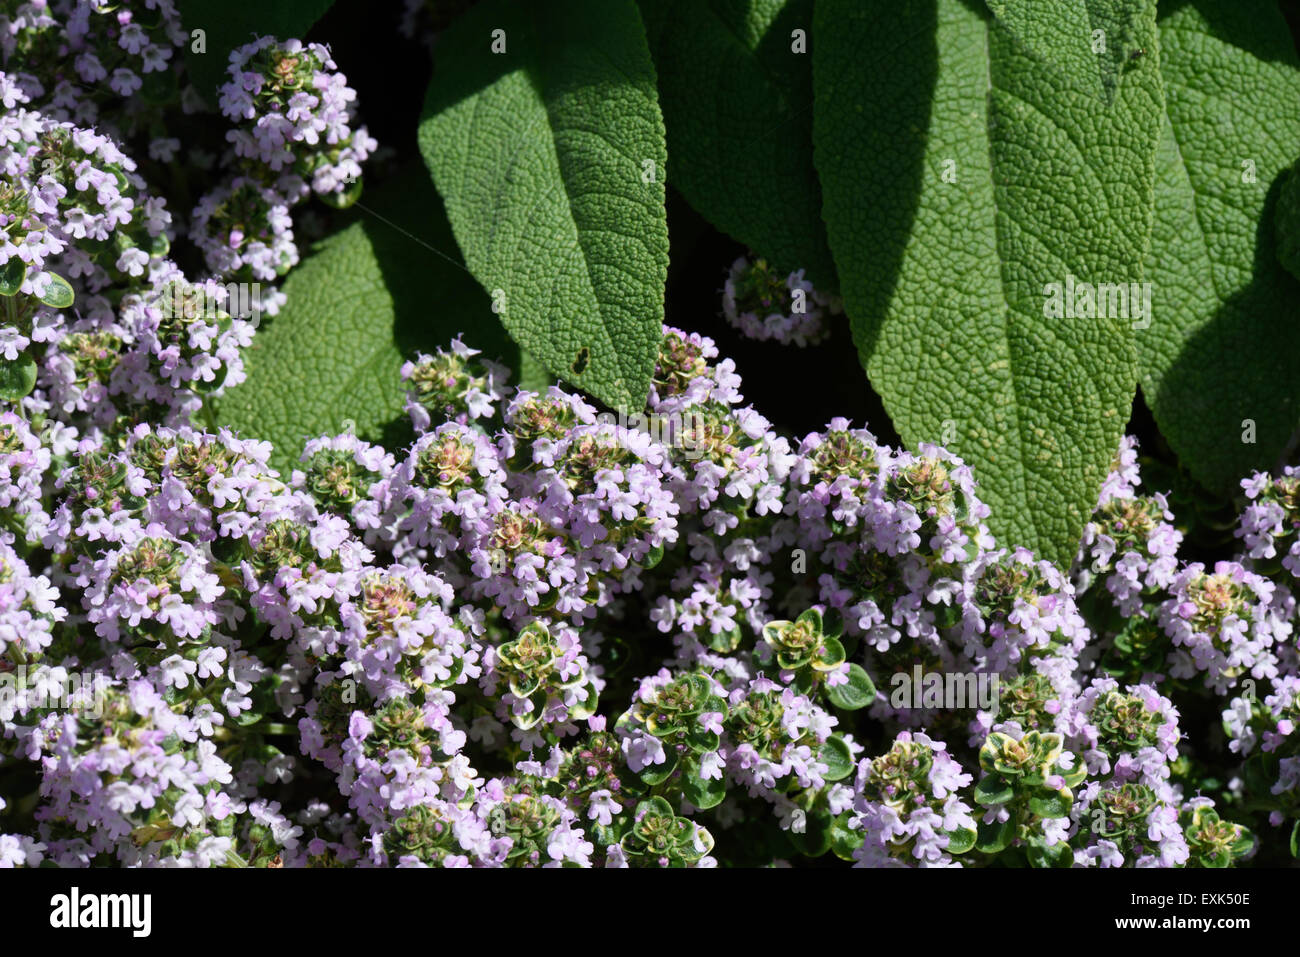 Raised bed for culinary herbs, thyme (flowering) and sage for use in the kitchen - Stock Image